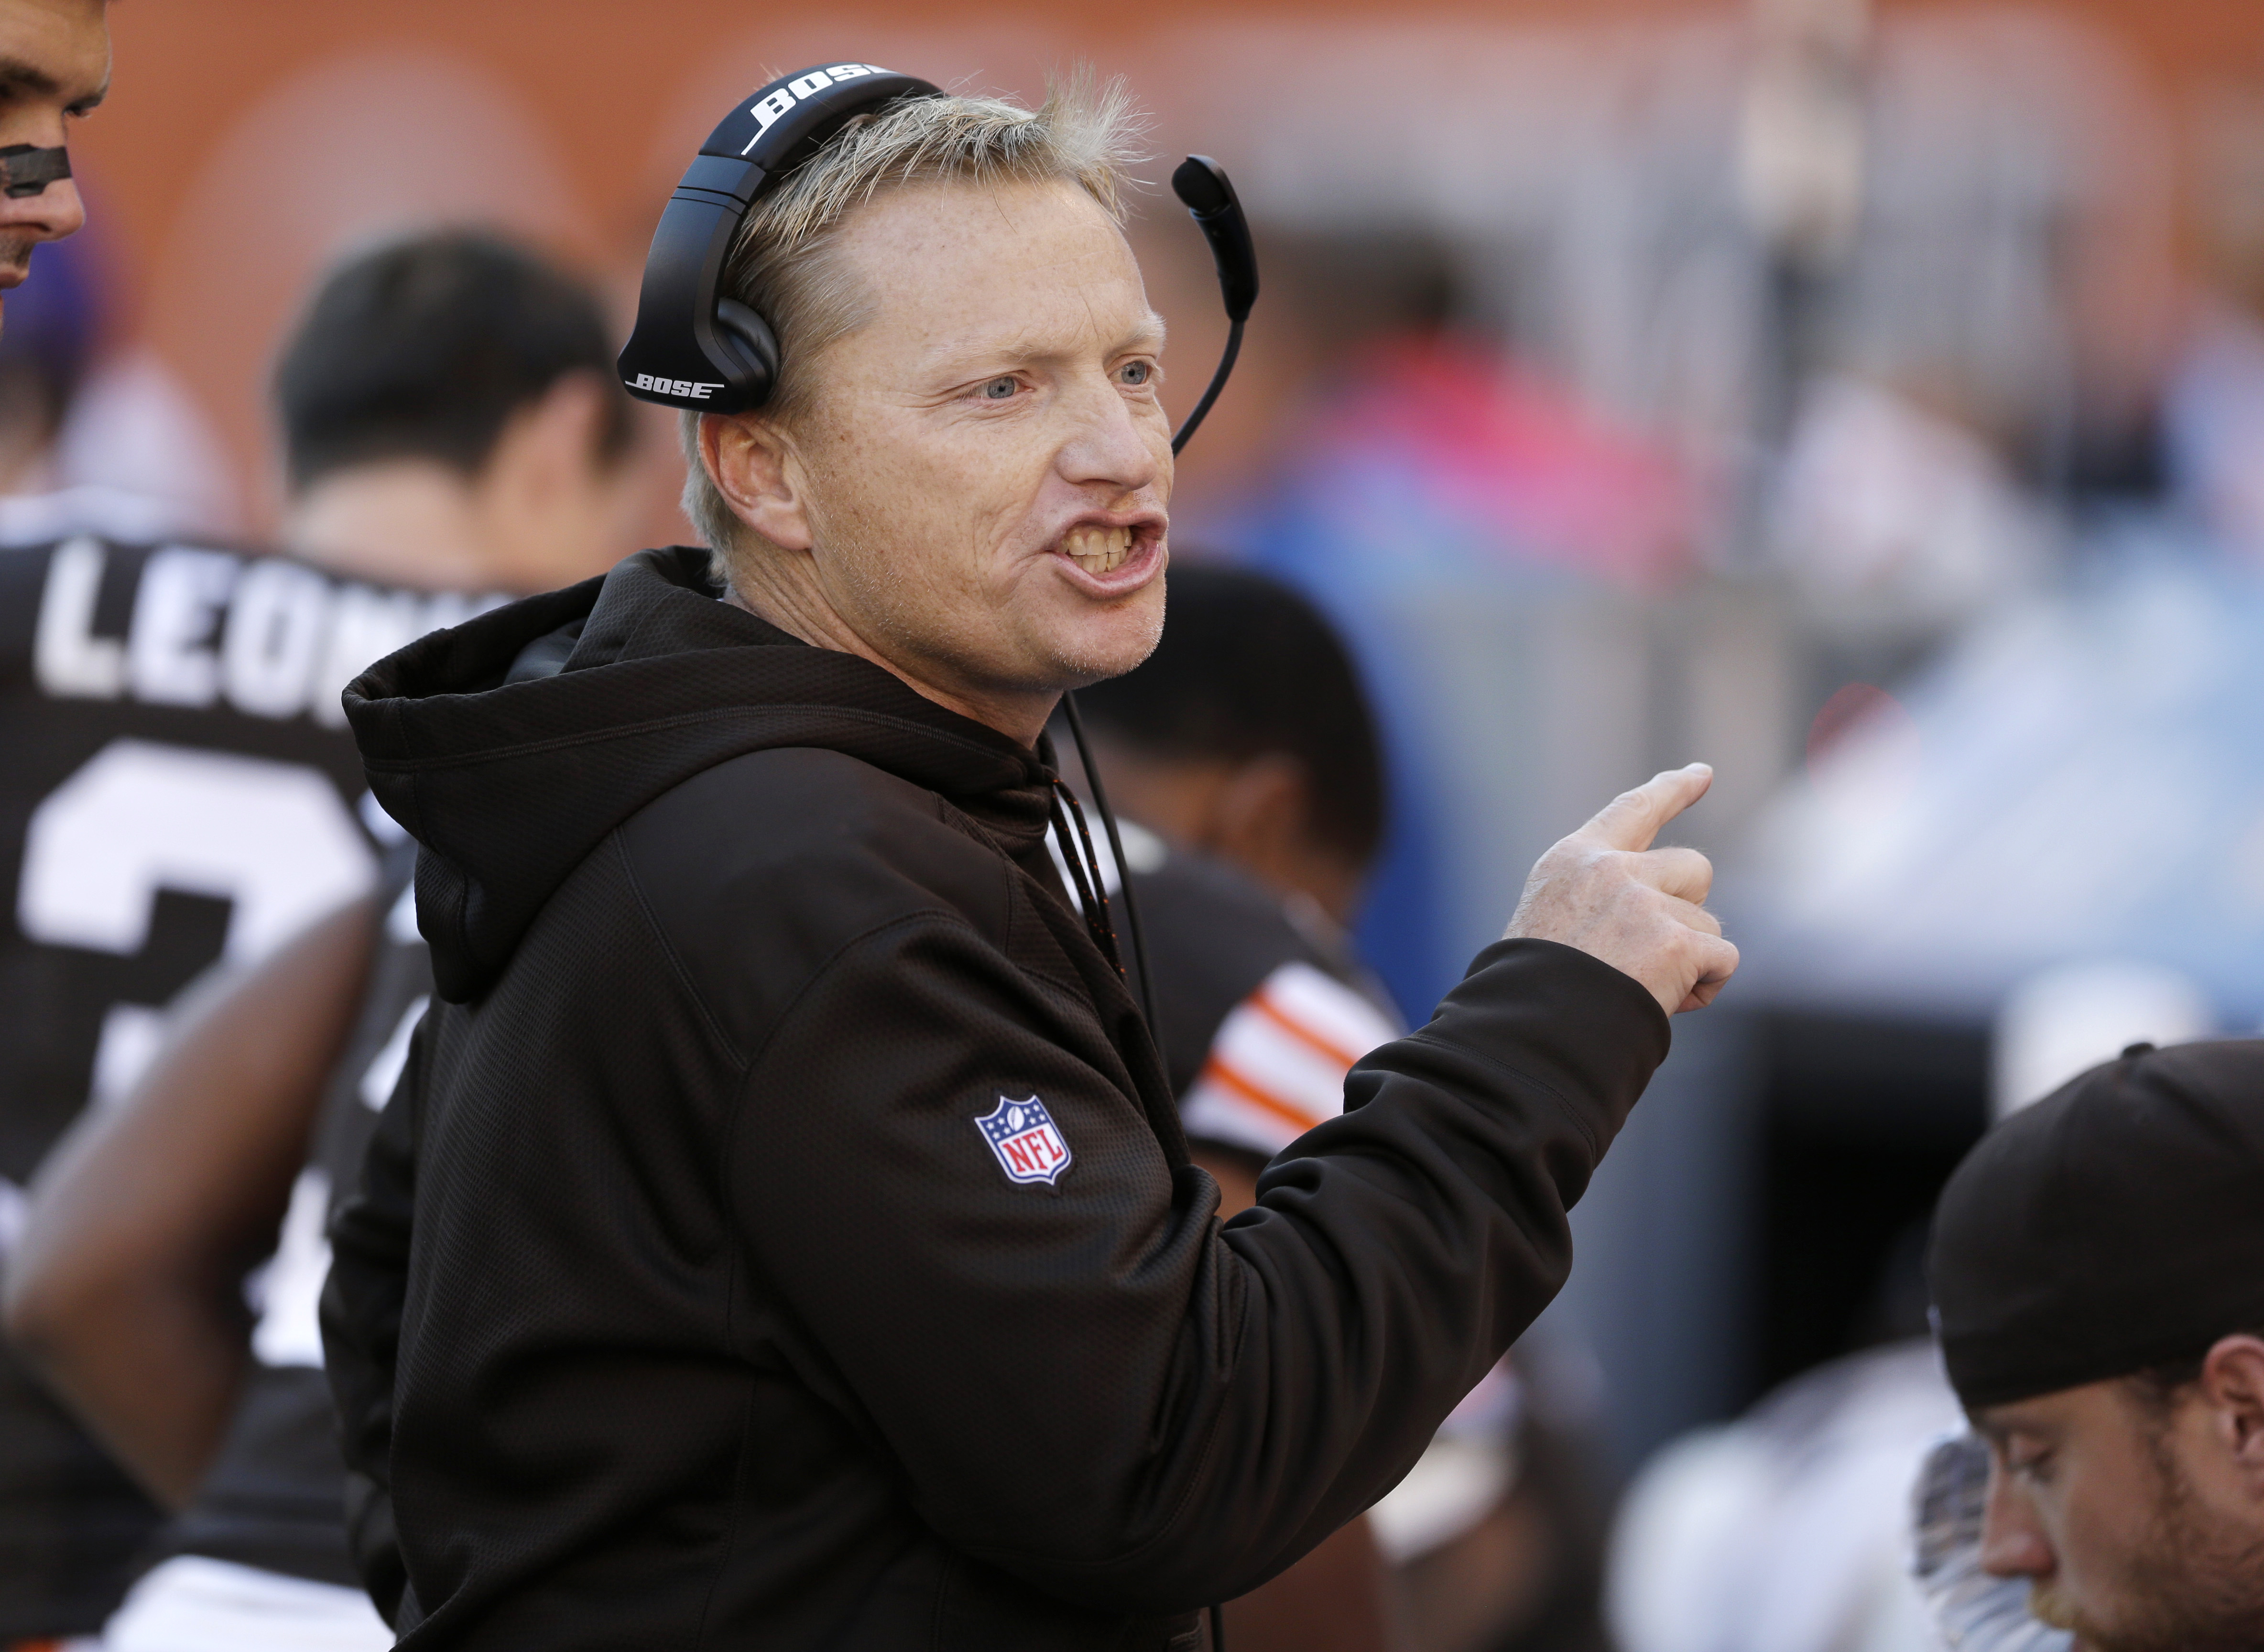 FILE - In this Oct. 26, 2014, file photo, Cleveland Browns special teams coordinator Chris Tabor gestures during an NFL football game against the Oakland Raiders, in Cleveland. The Browns are hanging on to special teams coordinator Chris Tabor. New coach